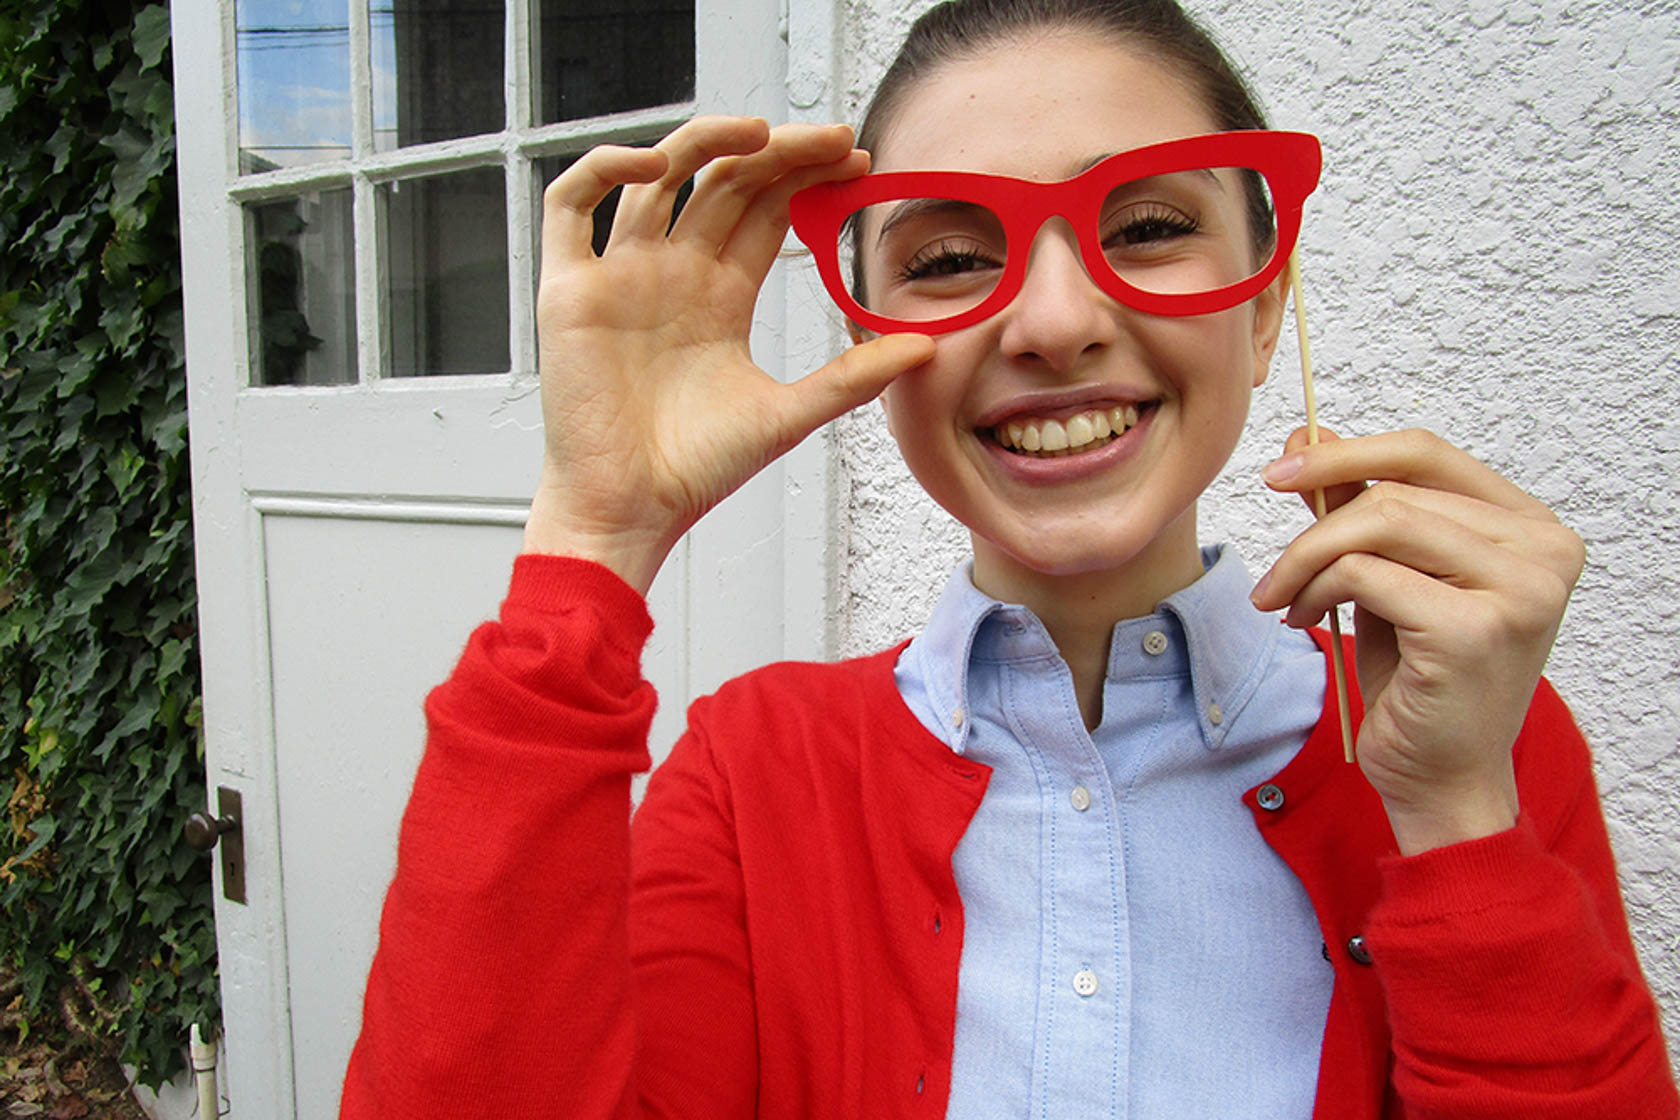 Image of a girl wearing big red glasses shot on the IXUS 180